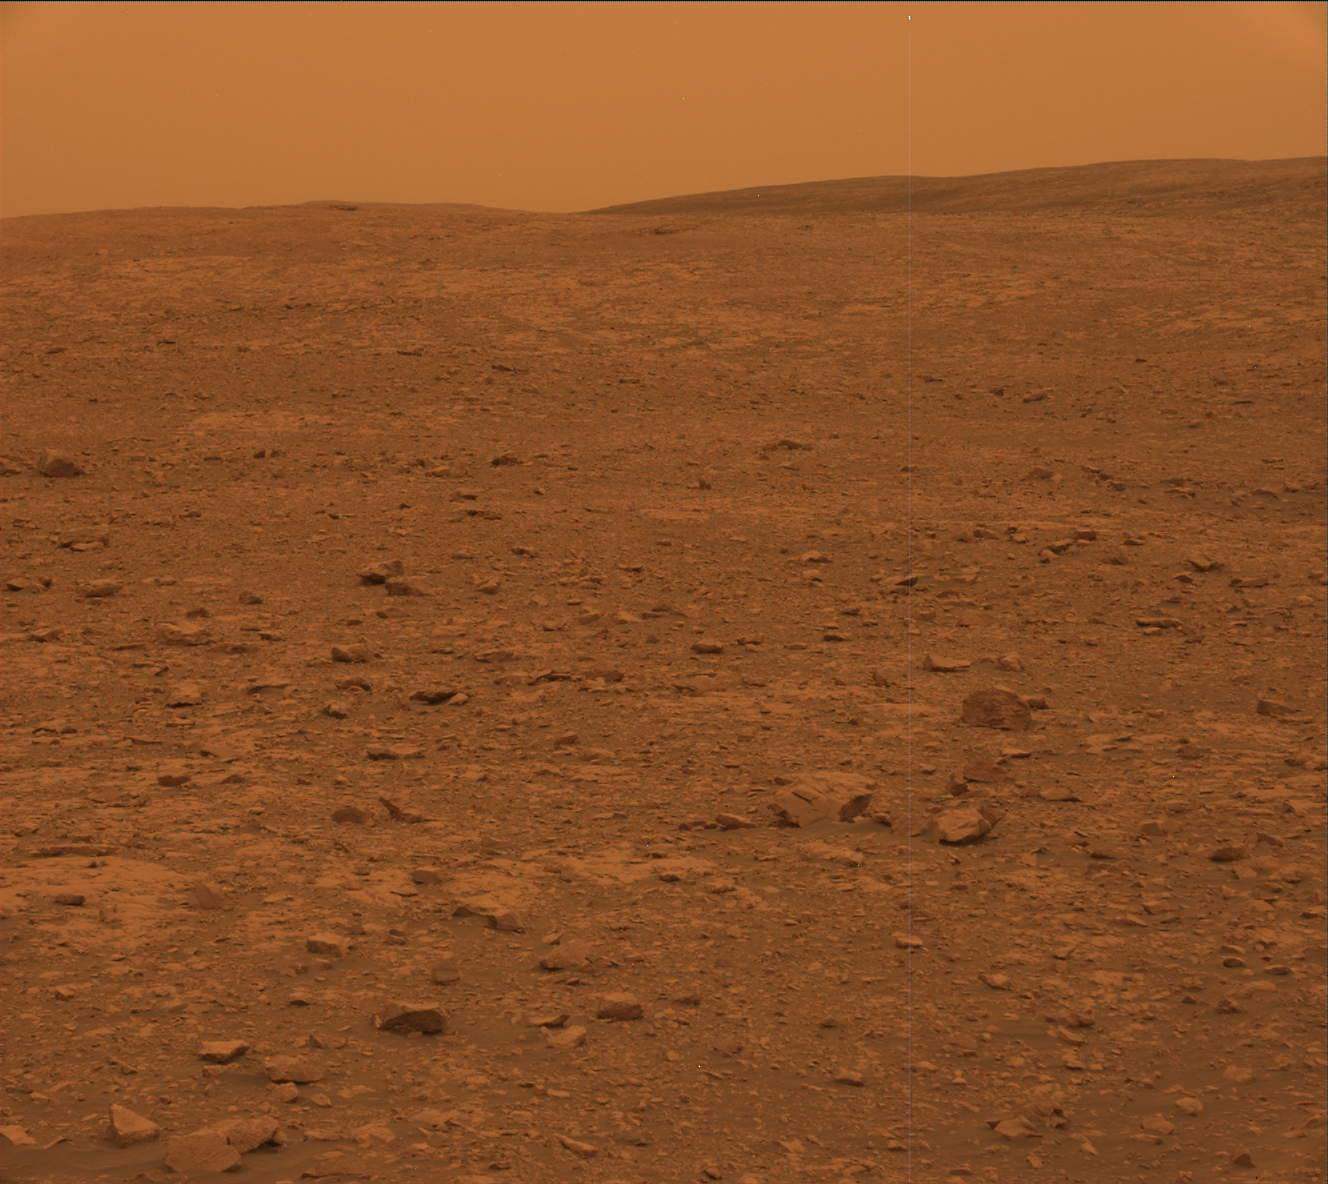 Sol 2107: Heading Back to the Great Red Spot